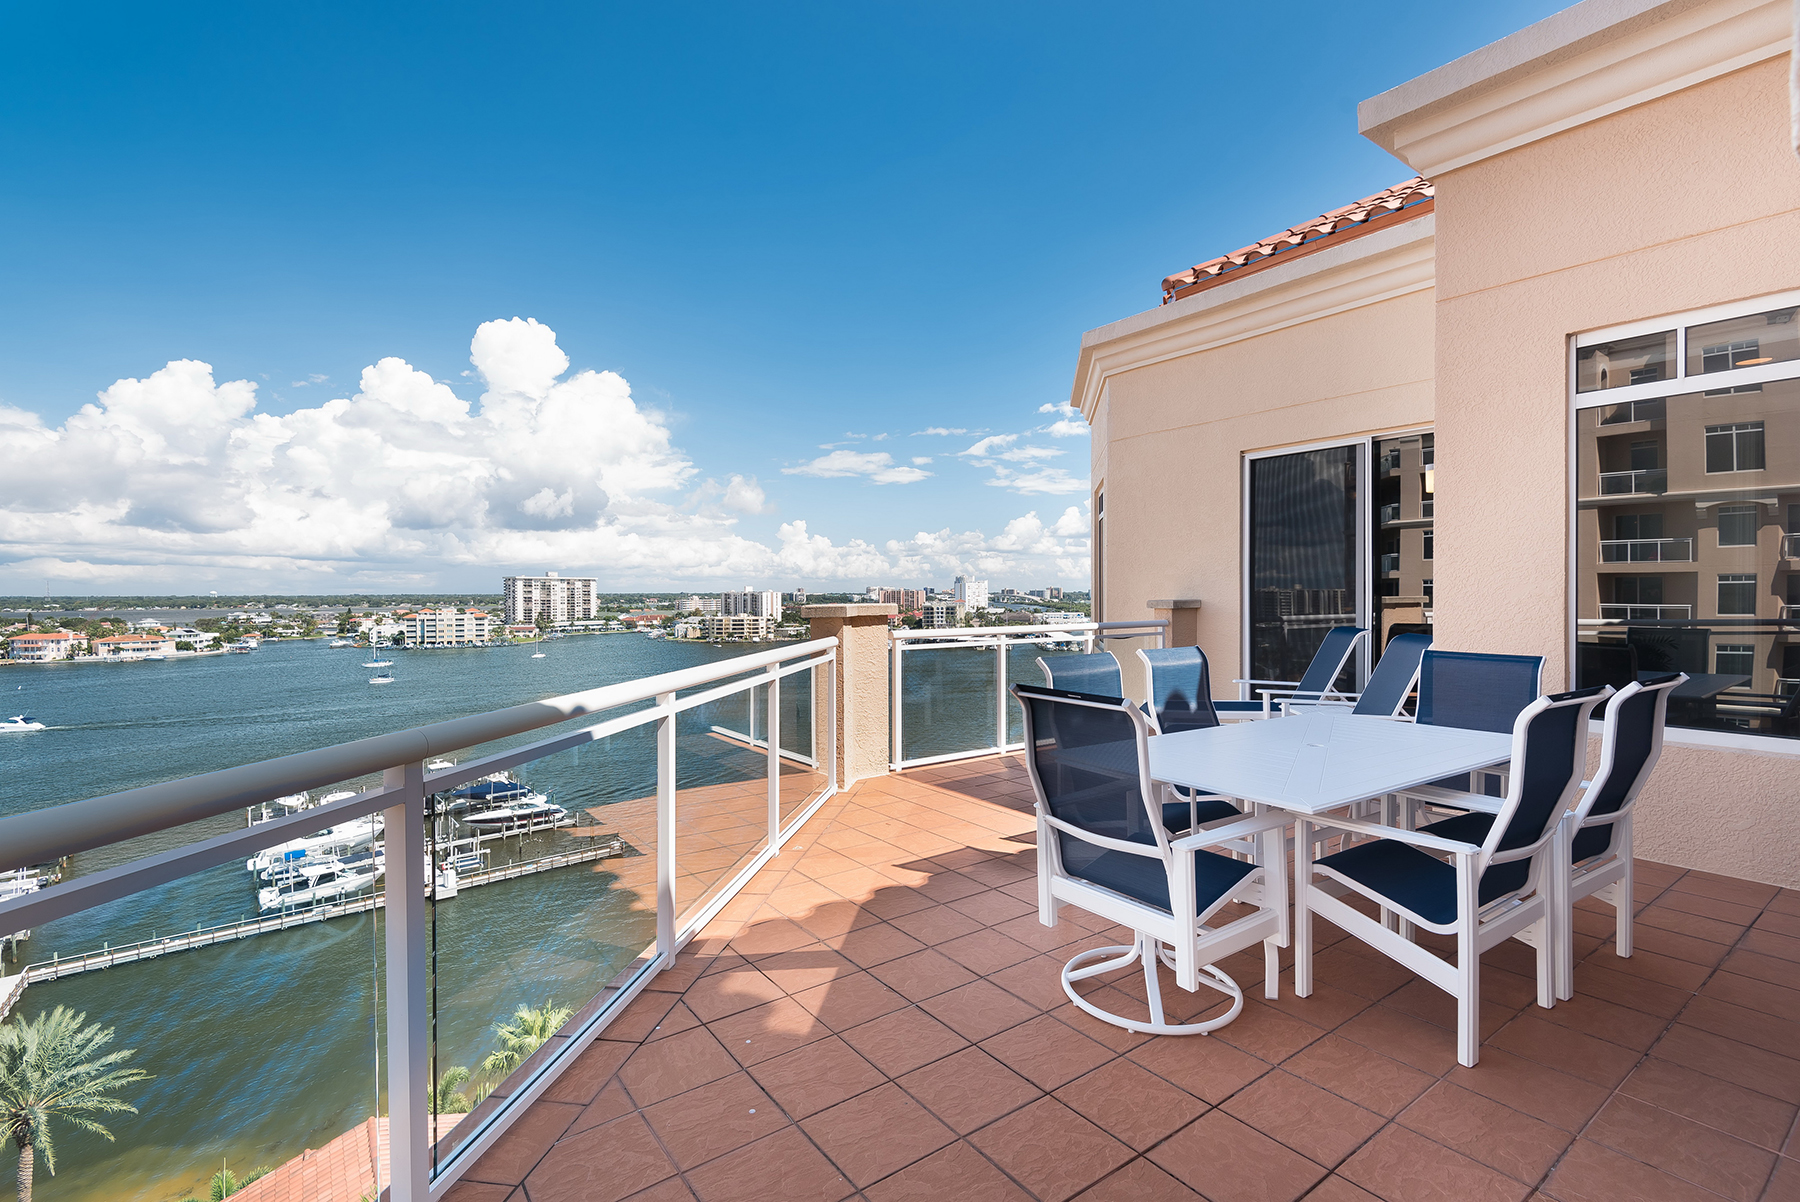 Condominium for Sale at CLEARWATER BEACH 501 Mandalay Ave 1010 Clearwater Beach, Florida, 33767 United States